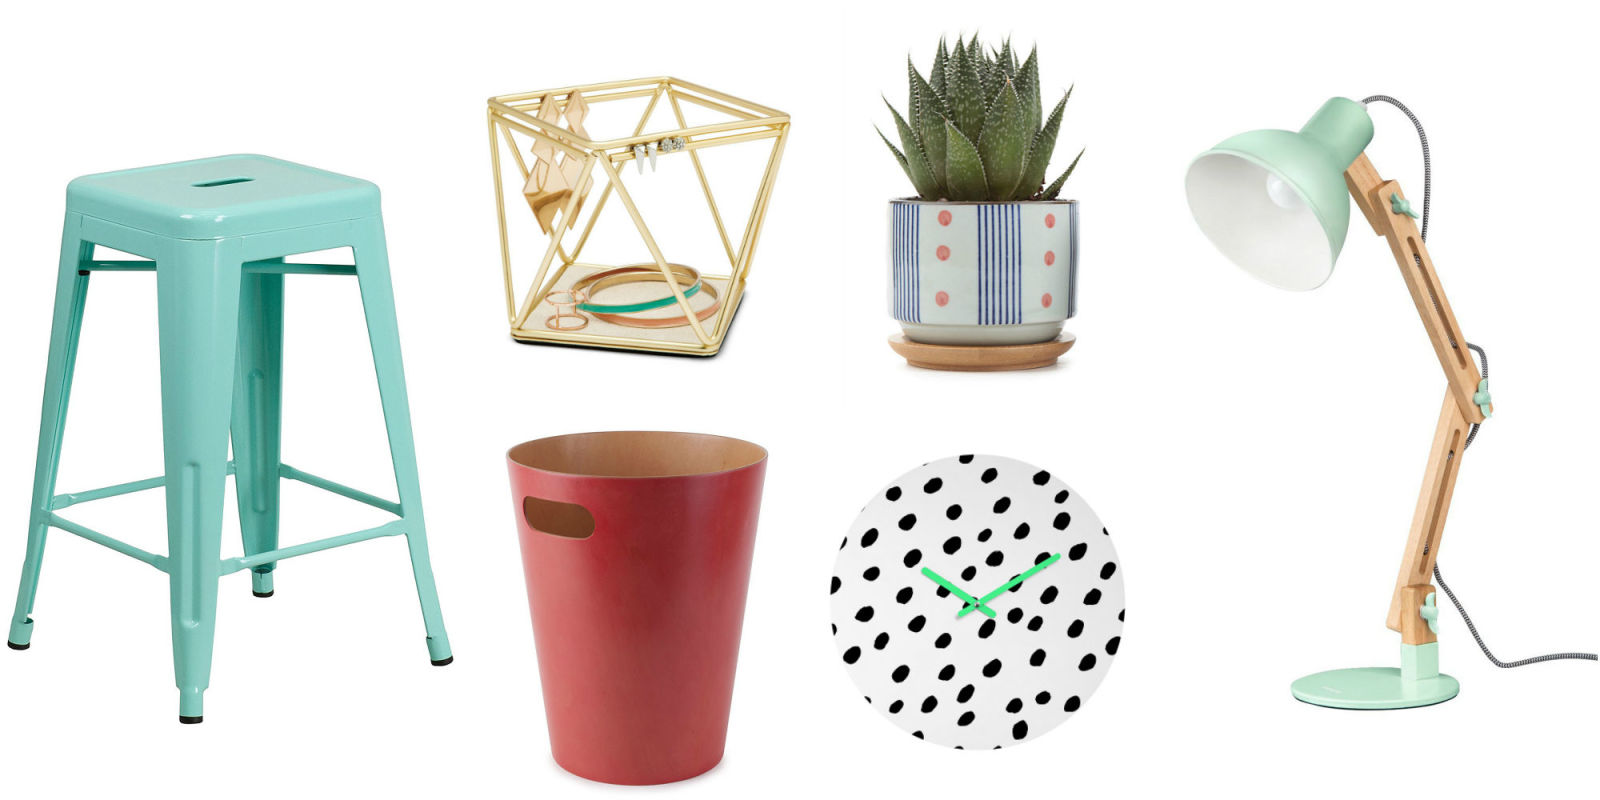 Home products company decorating ideas news amp media download contact - Download Home Products Company Decorating Ideas News Amp Media Download Contact 28 Home Products Company